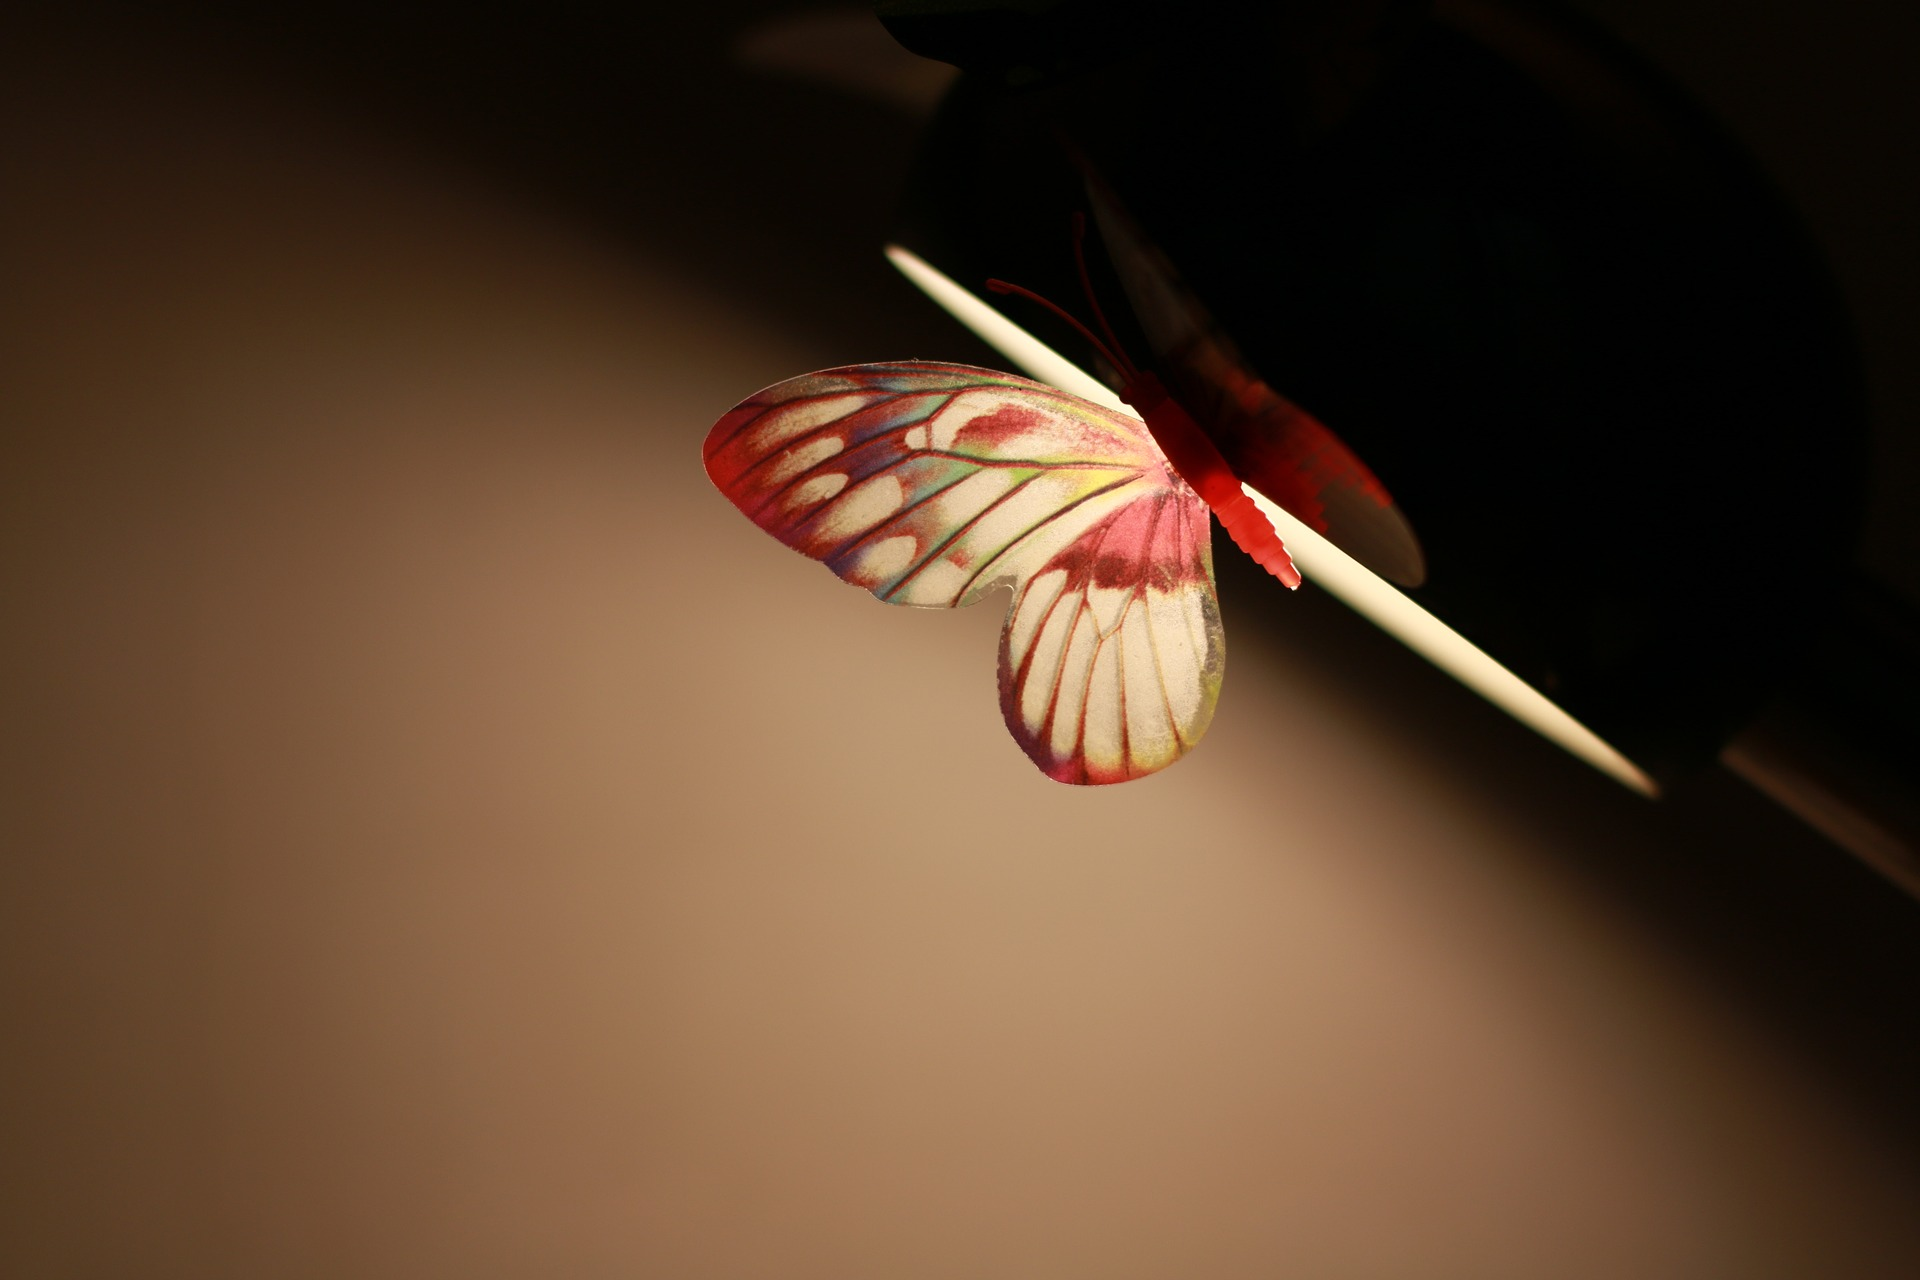 butterfly lamp wallpaper background